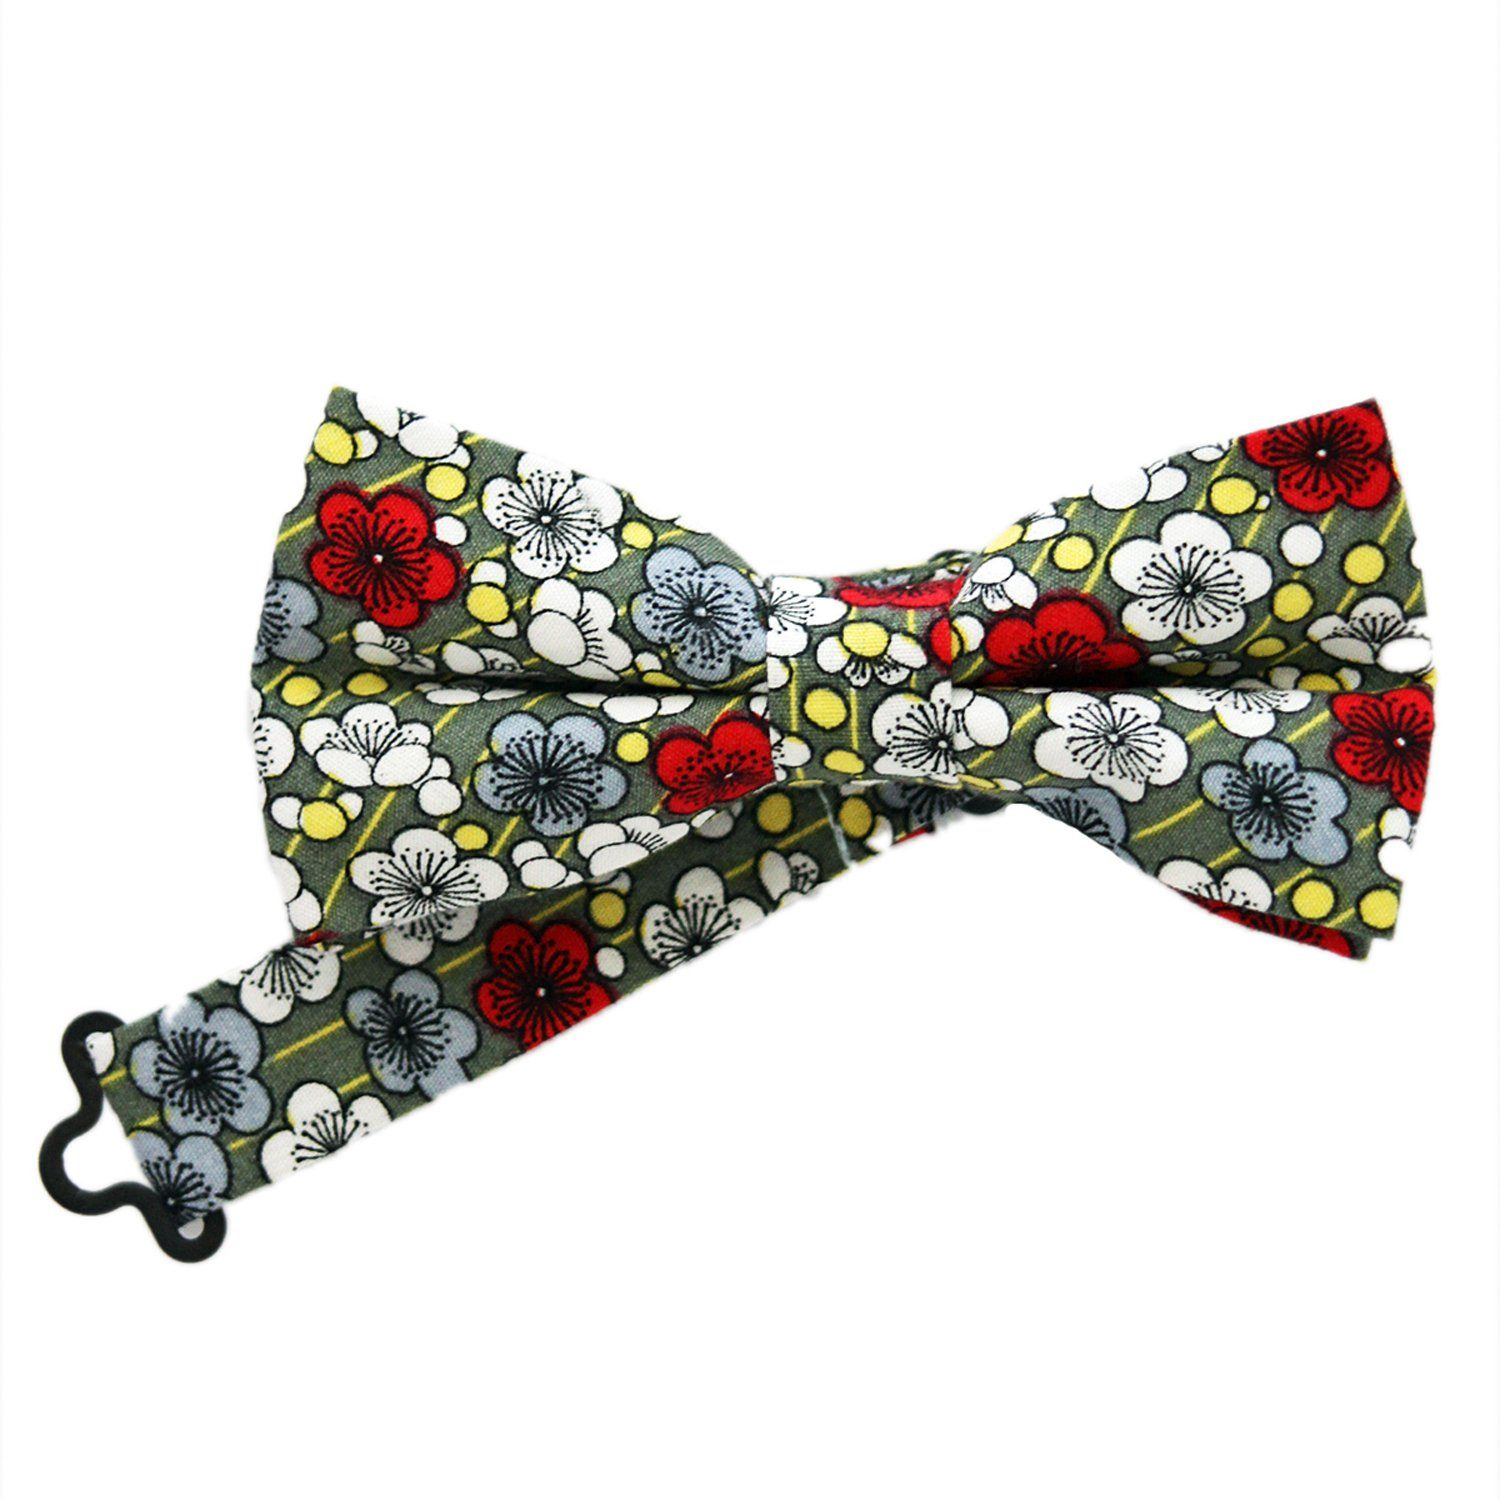 Flower Power Bow Tie